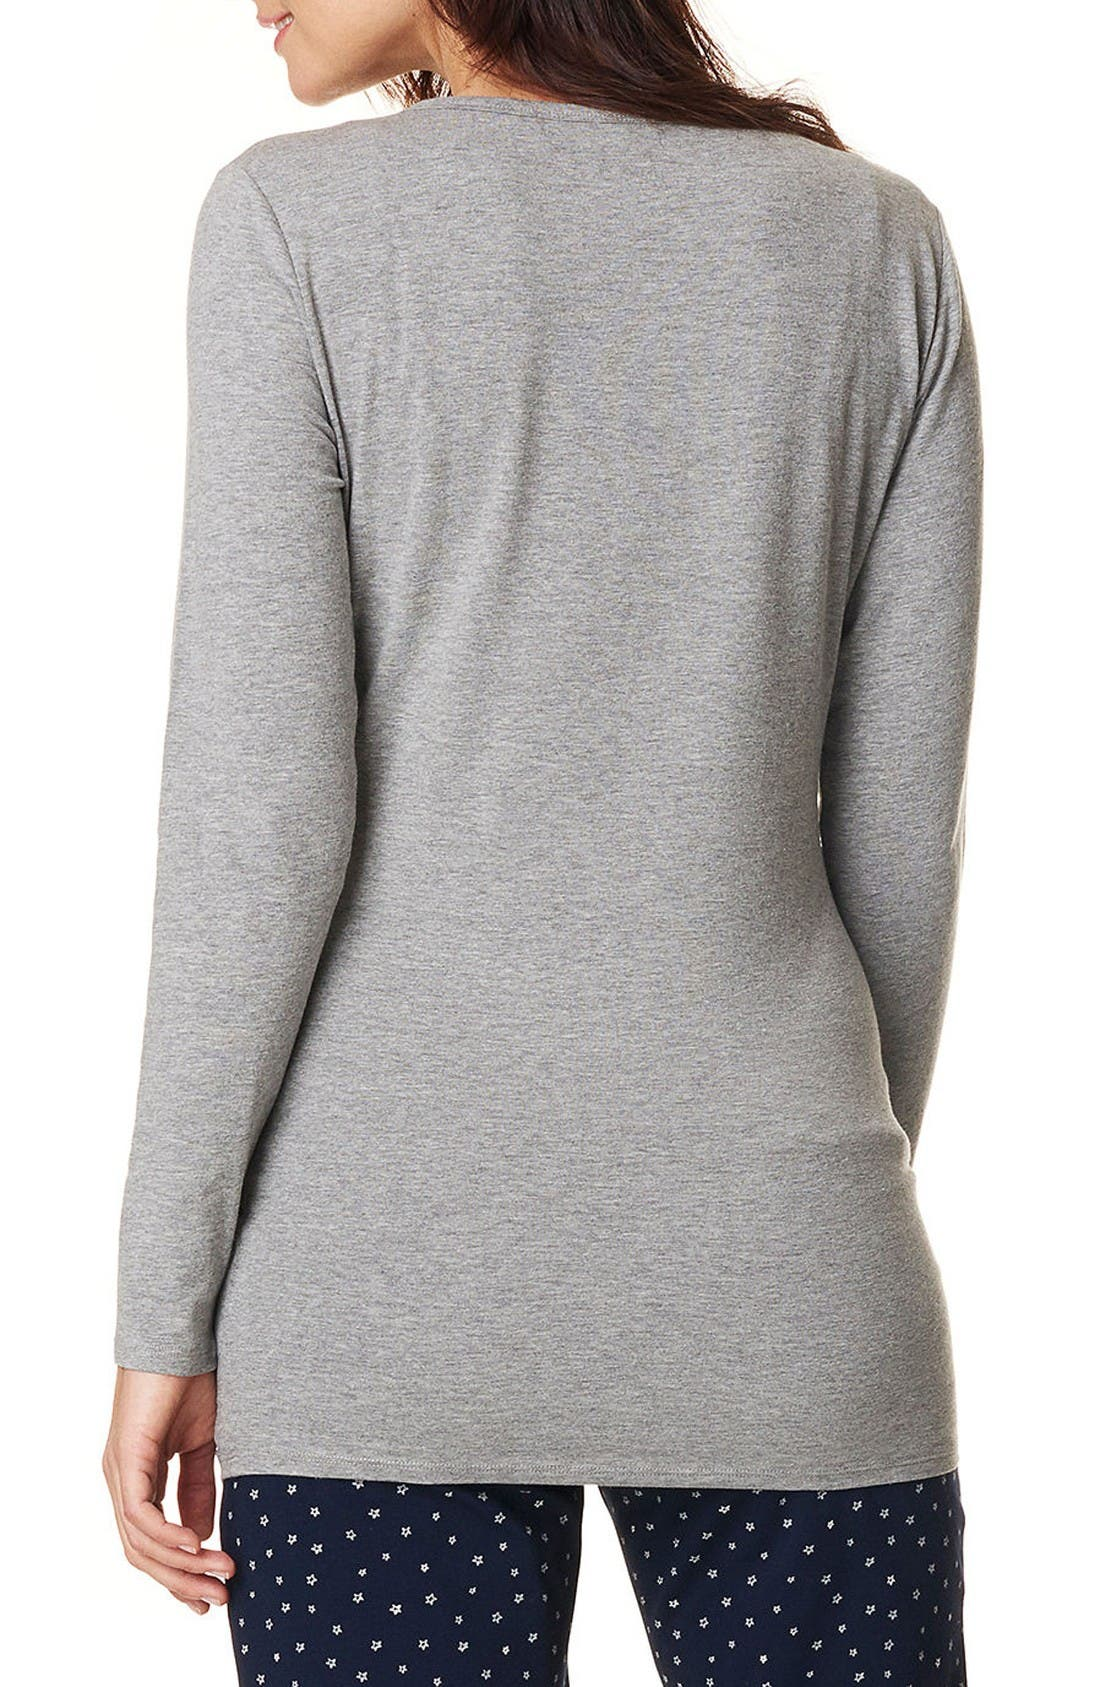 Feline Henley Maternity/Nursing Tee,                             Alternate thumbnail 2, color,                             Grey